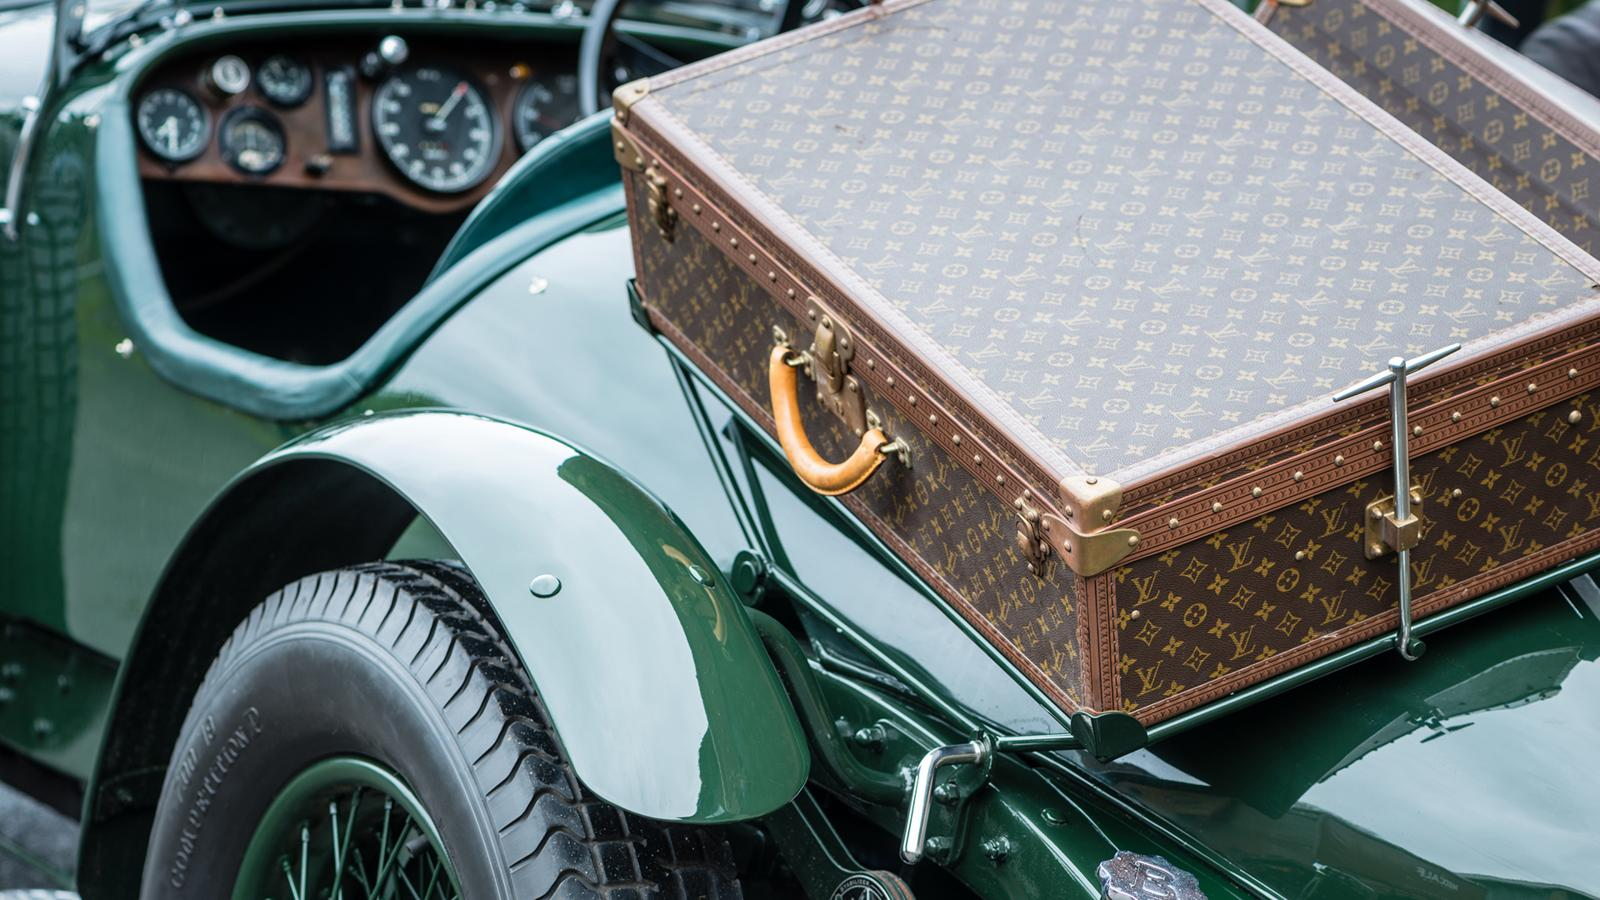 rare bentley with vintage louis vuitton luggage is up for sale pursuitist. Black Bedroom Furniture Sets. Home Design Ideas